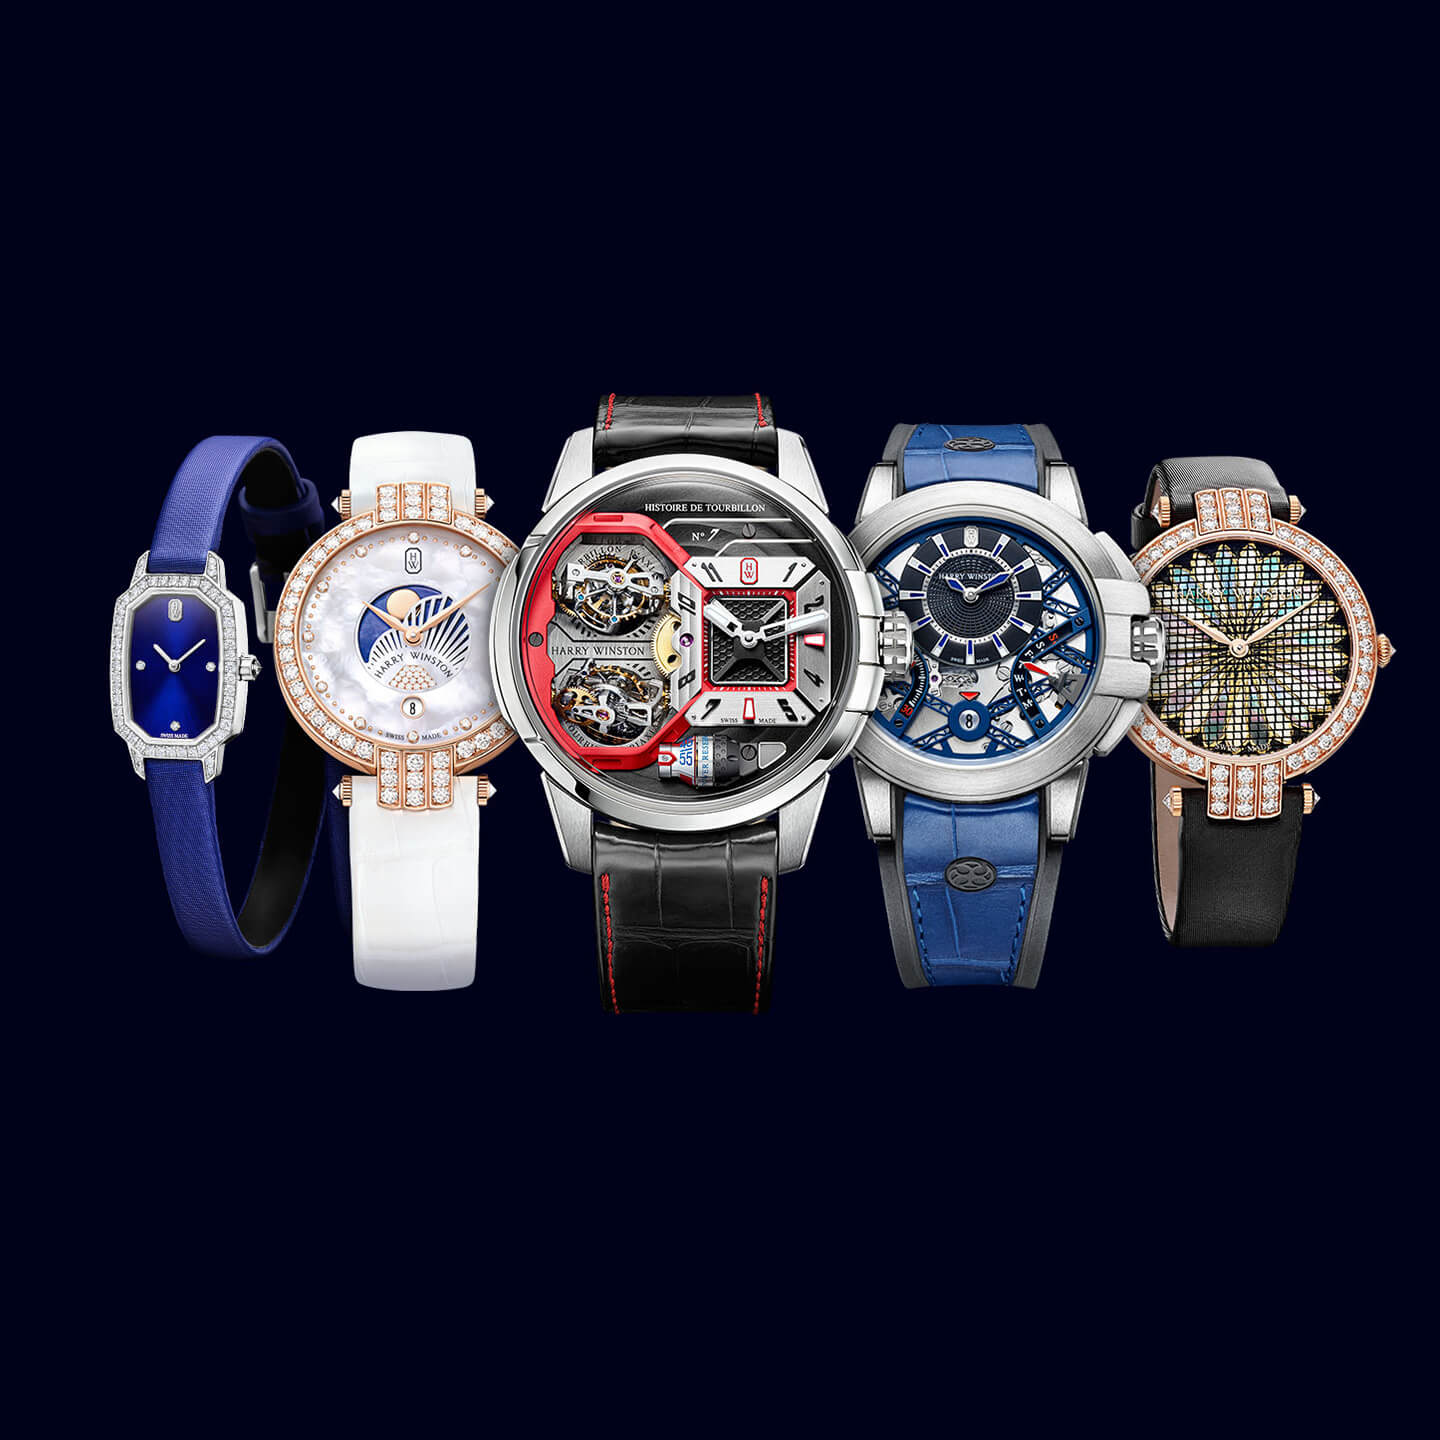 Harry Winston at Baselworld 2016